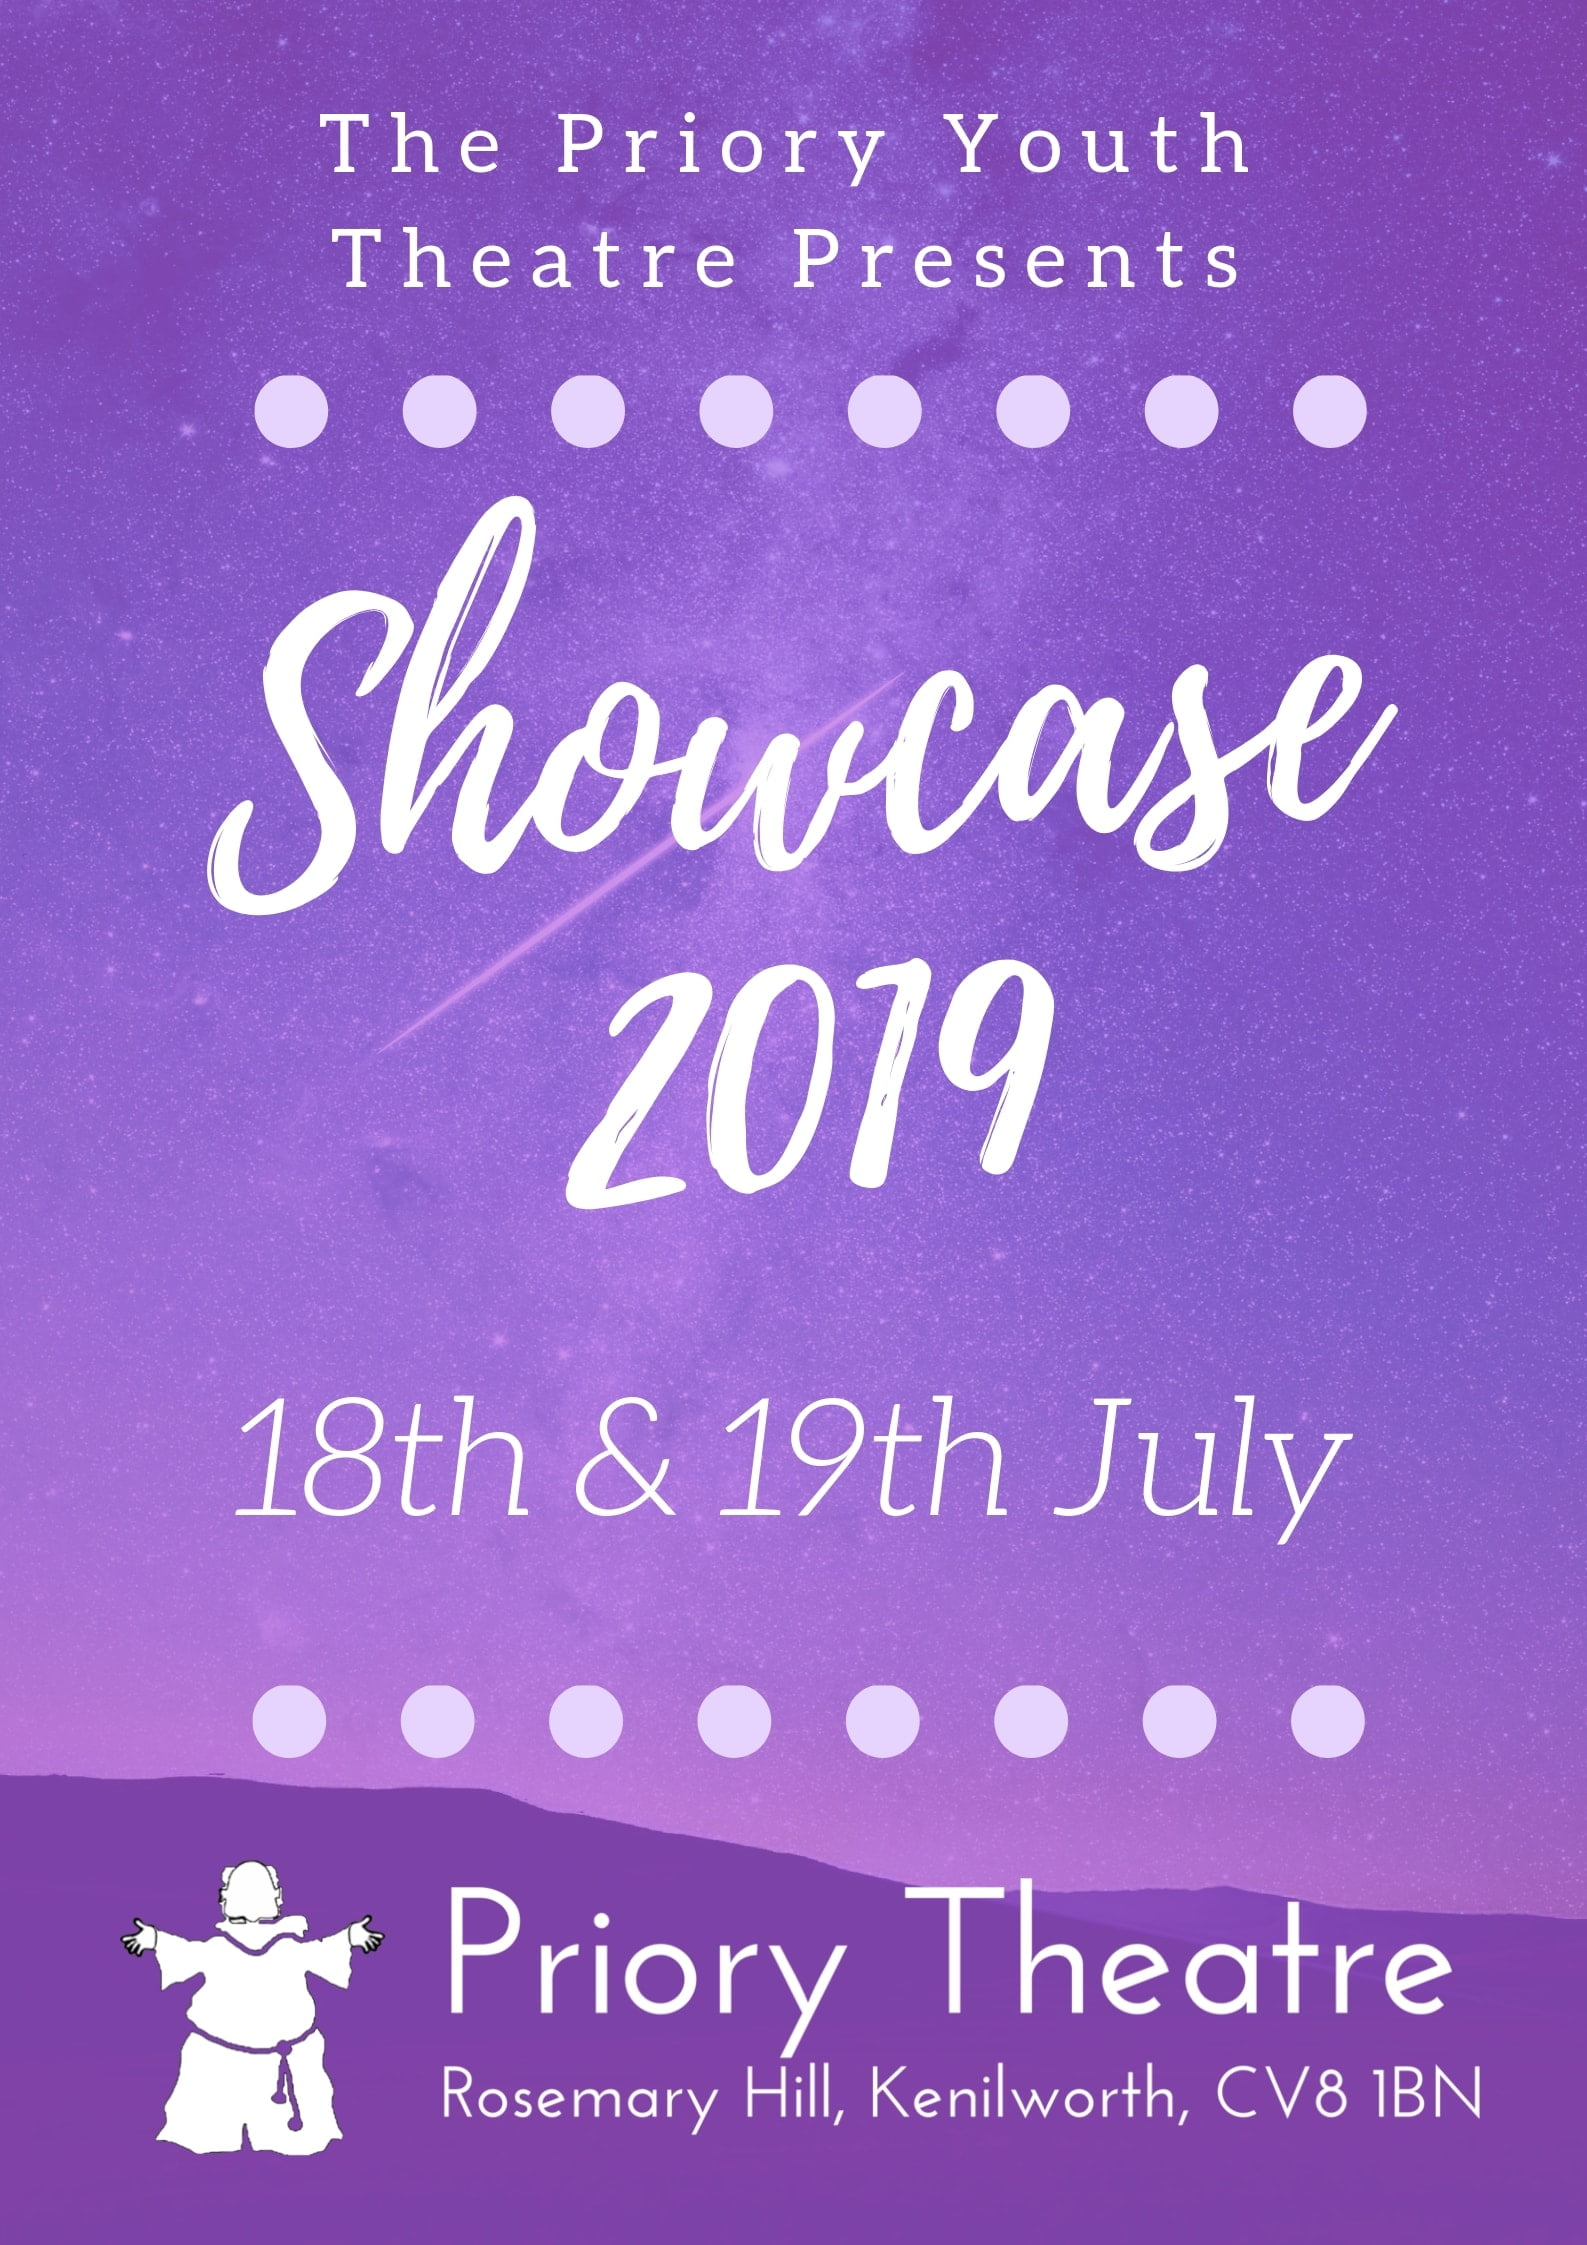 Priory Youth Theatre Showcase 2019 banner image